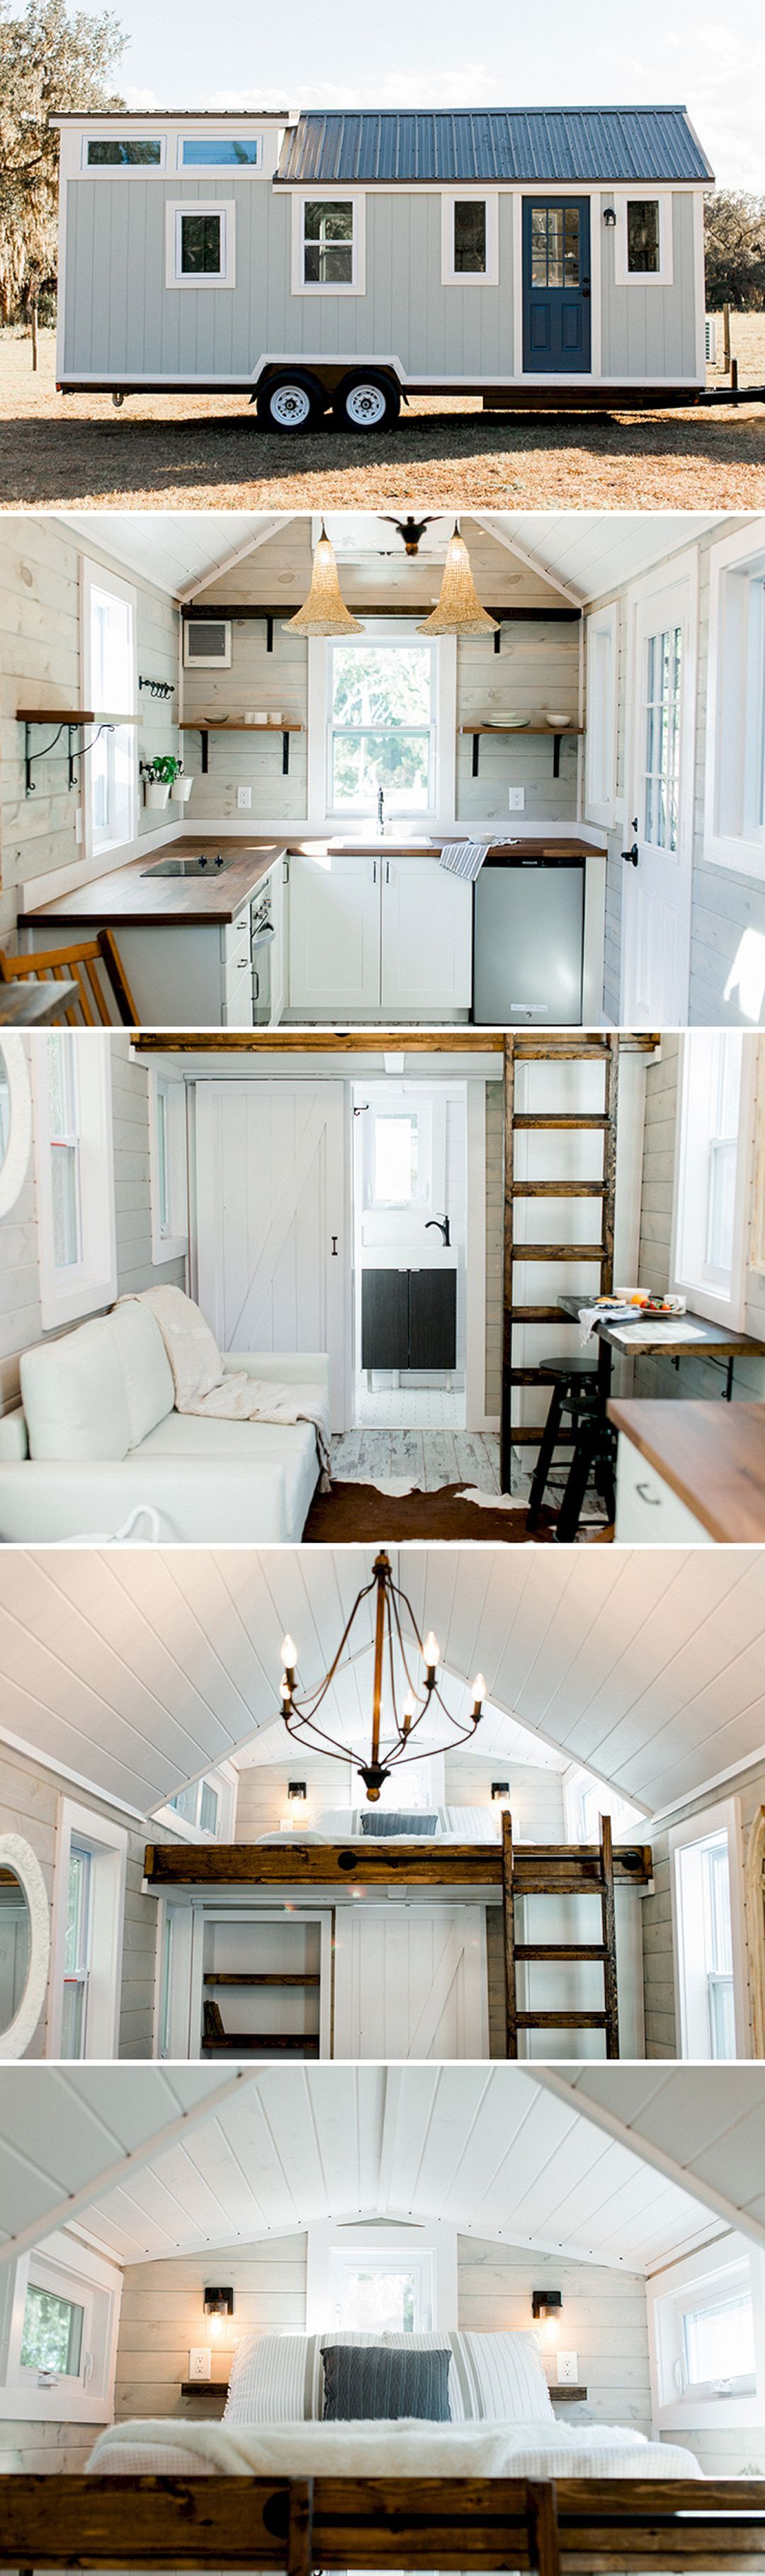 Stunning Tiny House on Wheels that You Must Have Right Now (24 Ideas ...